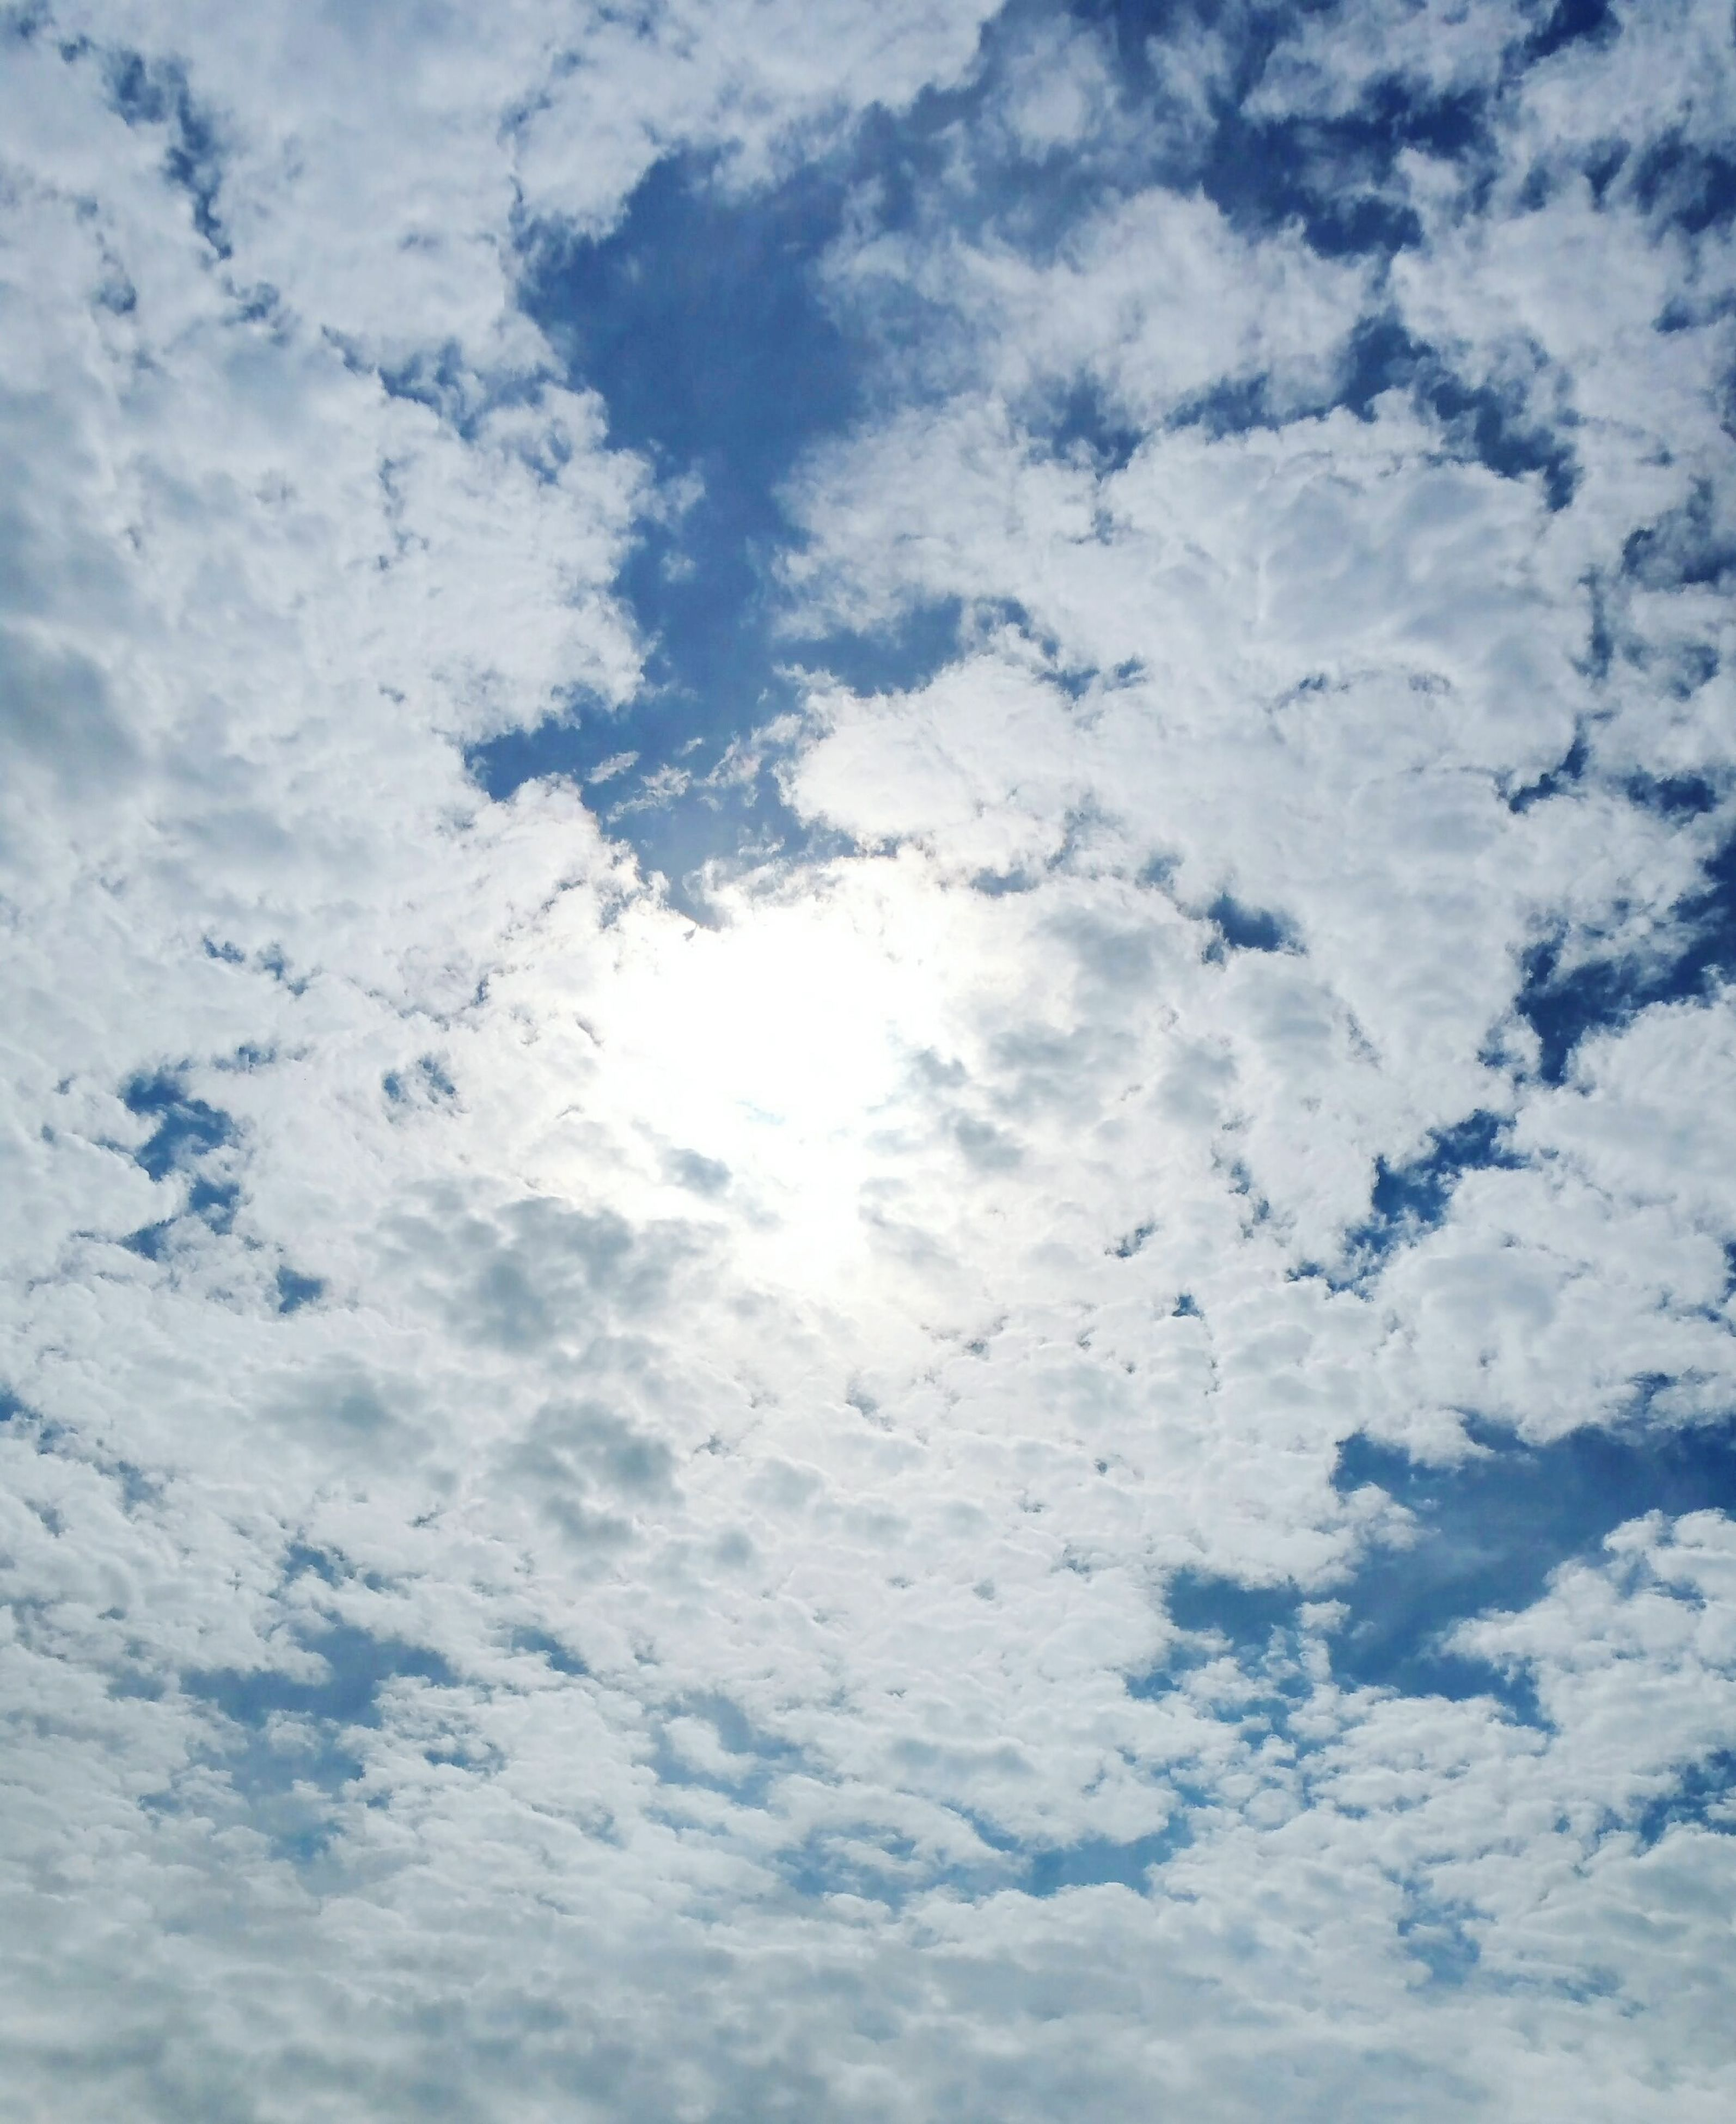 sky, cloud - sky, low angle view, beauty in nature, cloudy, tranquility, scenics, nature, white color, sky only, tranquil scene, backgrounds, weather, full frame, cloudscape, cloud, blue, idyllic, white, day